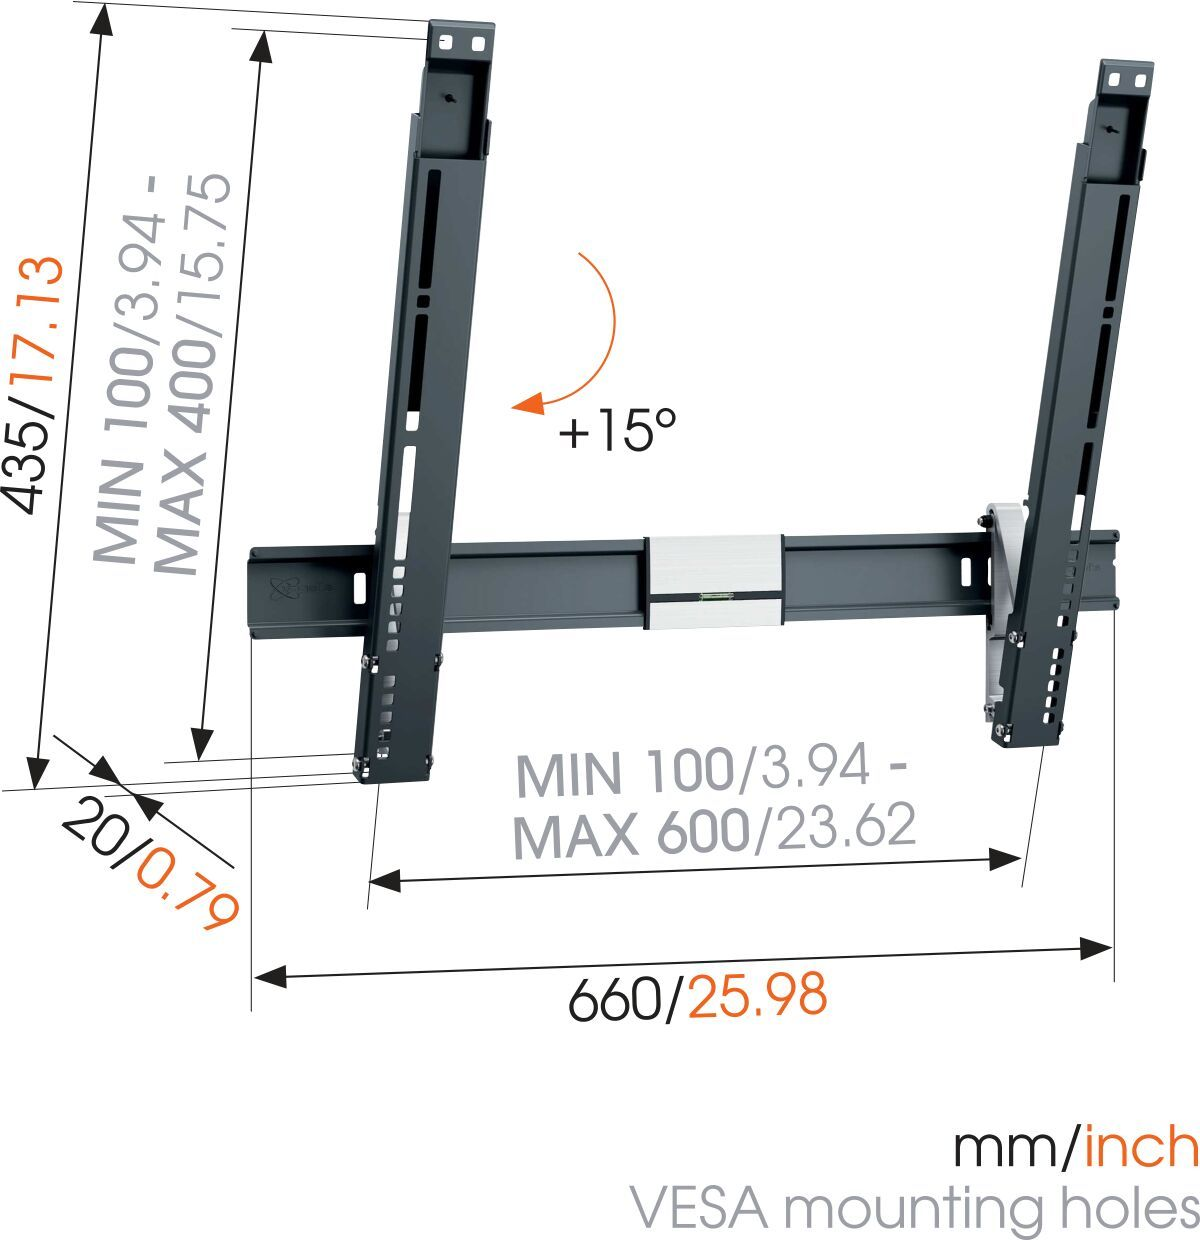 Vogel's THIN 515 ExtraThin Tilting TV Wall Mount - Suitable for 25 - Suitable for Tilt up to 15° - Suitable for Dimensions